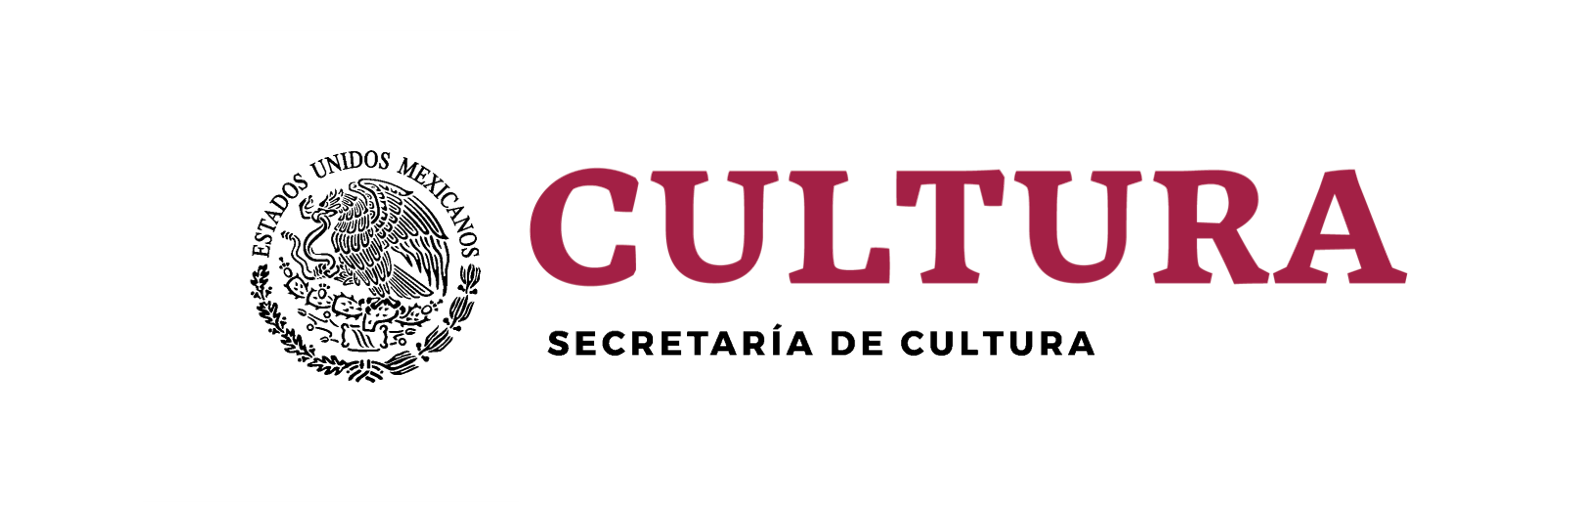 Secretaría de Cultura Federal